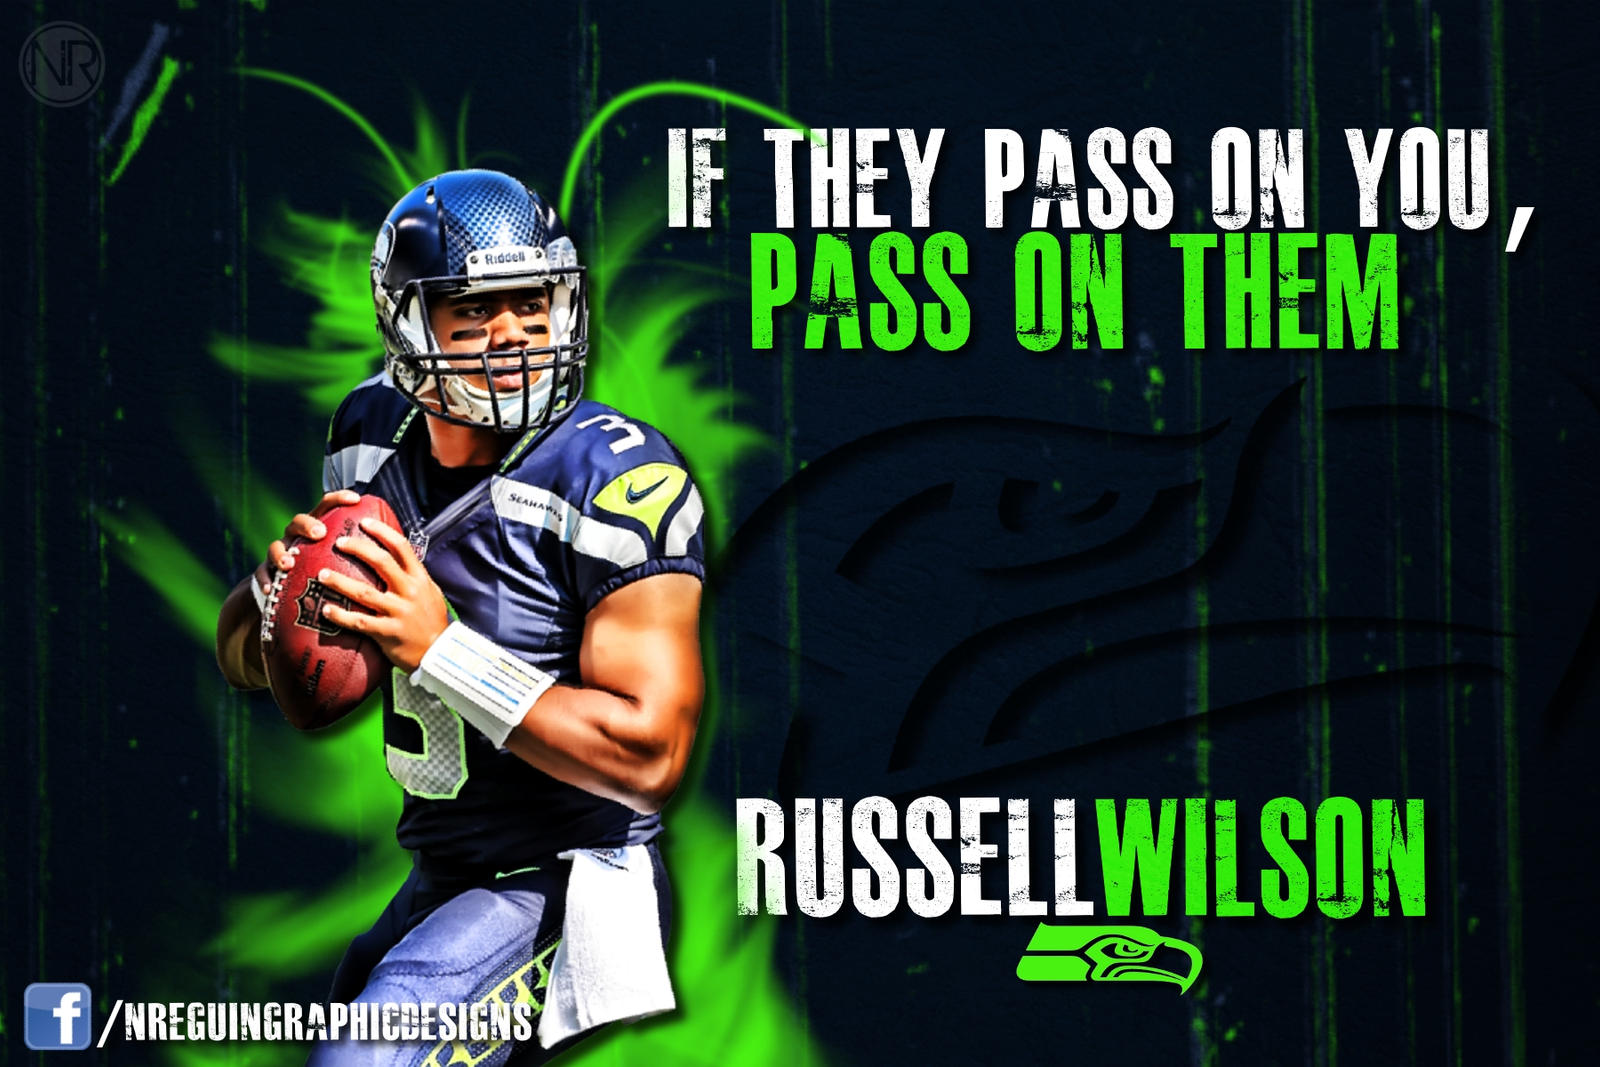 russell wilson wallpaper wallpapers - photo #14